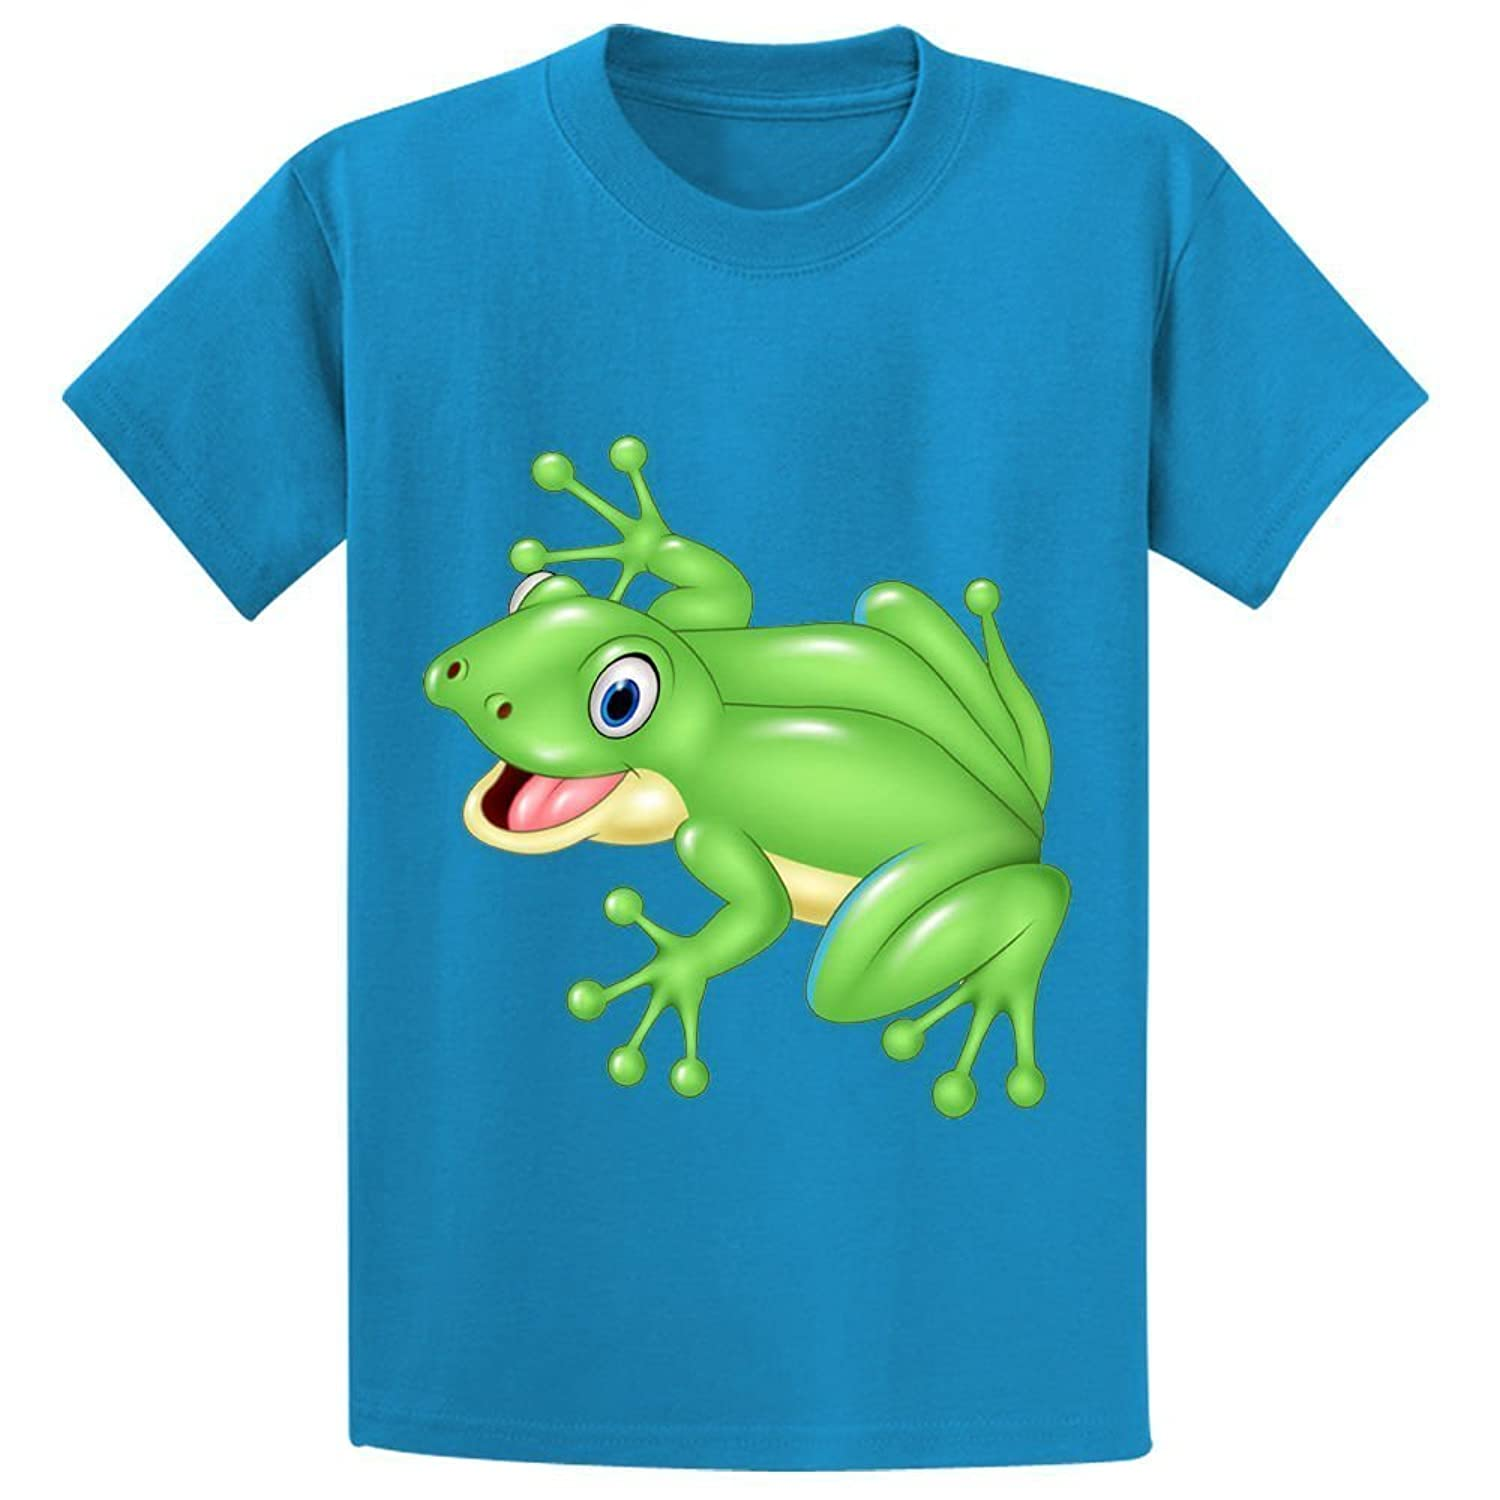 Abover Frog Youth Funny Round Neck T-Shirts